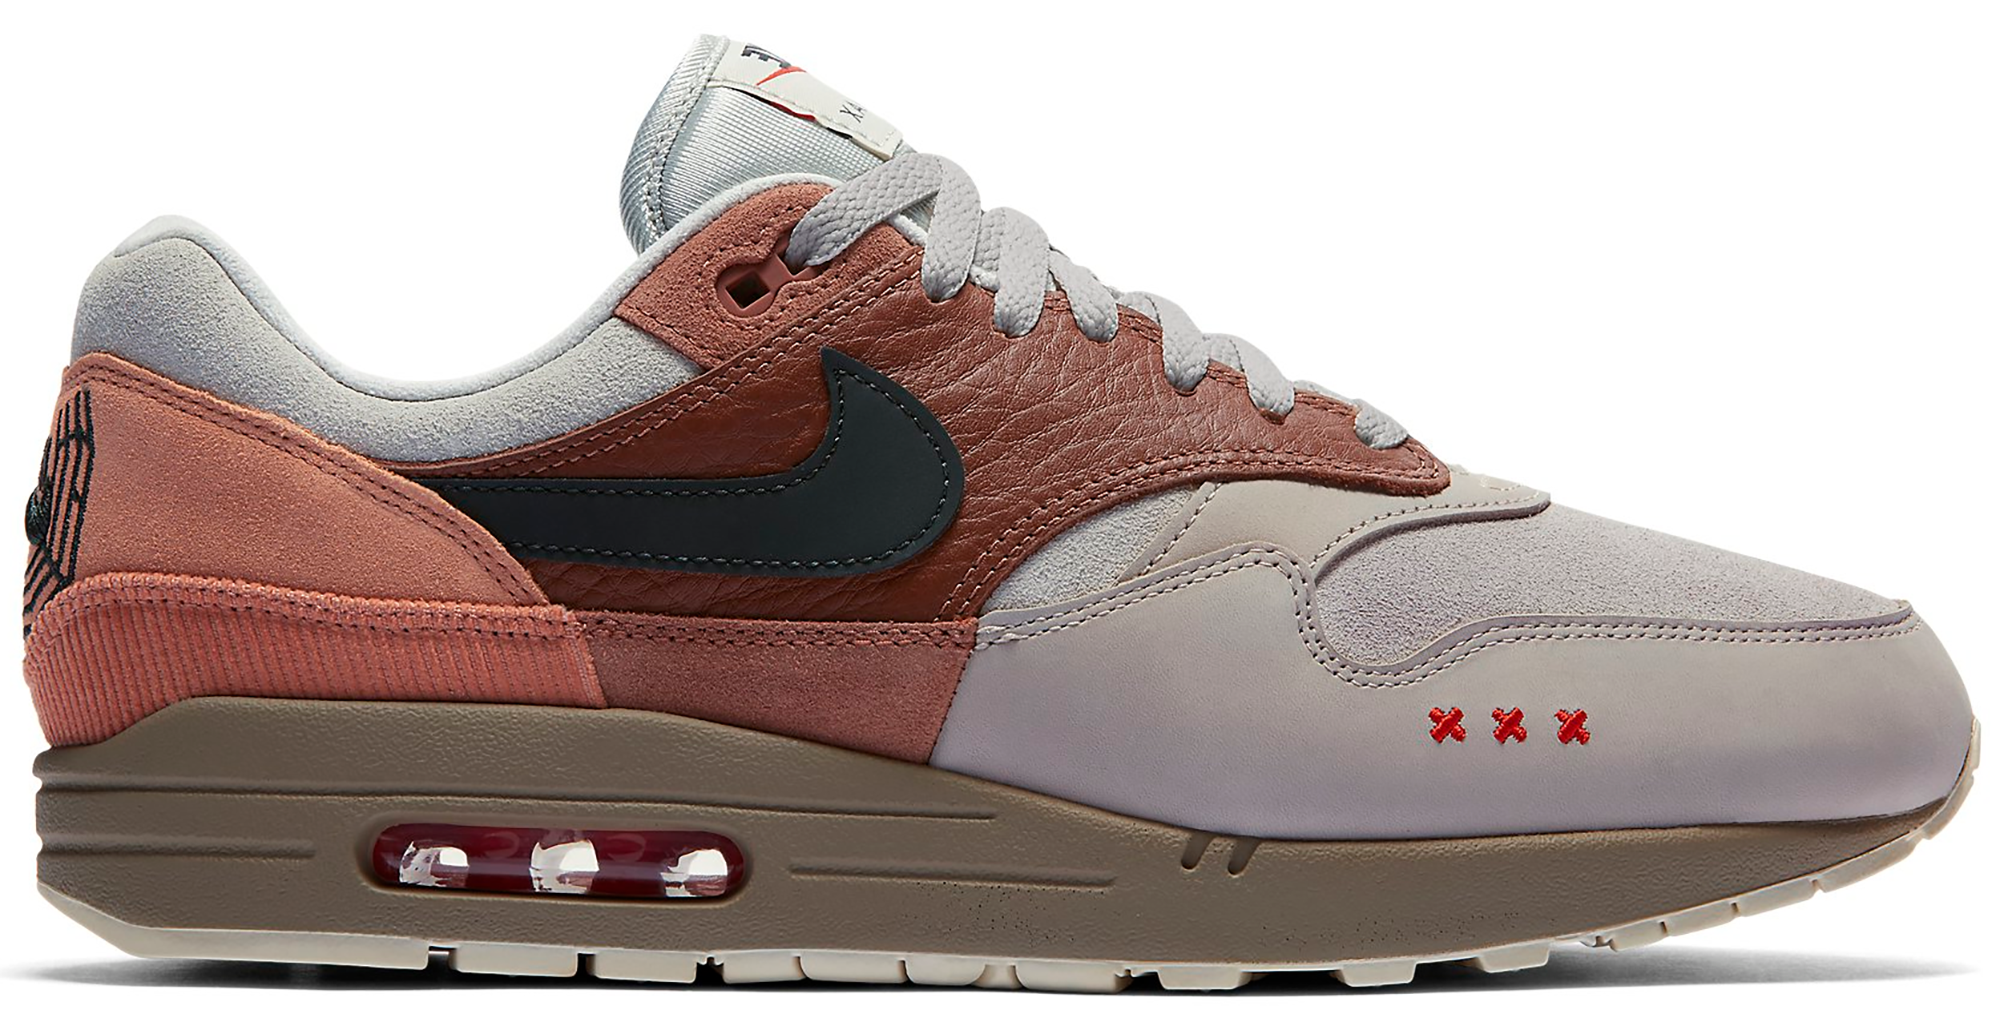 Nike Air Max 1 Shoes - Total Sold